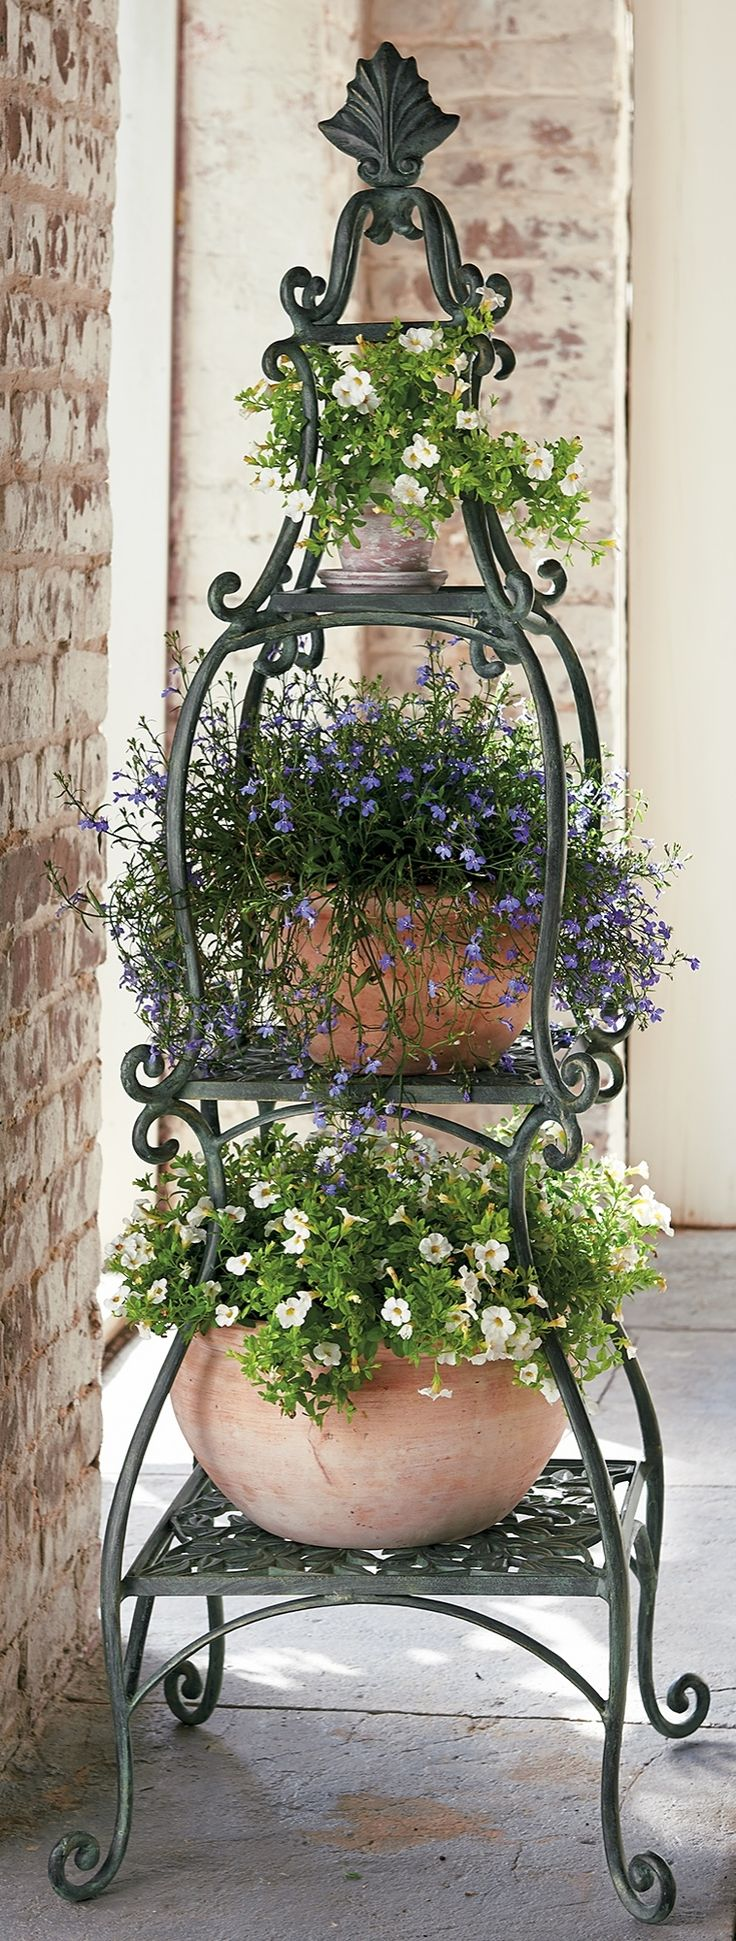 This refined Florentine Garden Collection enhances your outdoor space with delicate scrollwork and a hand-applied verdigris finish with gold highlights.